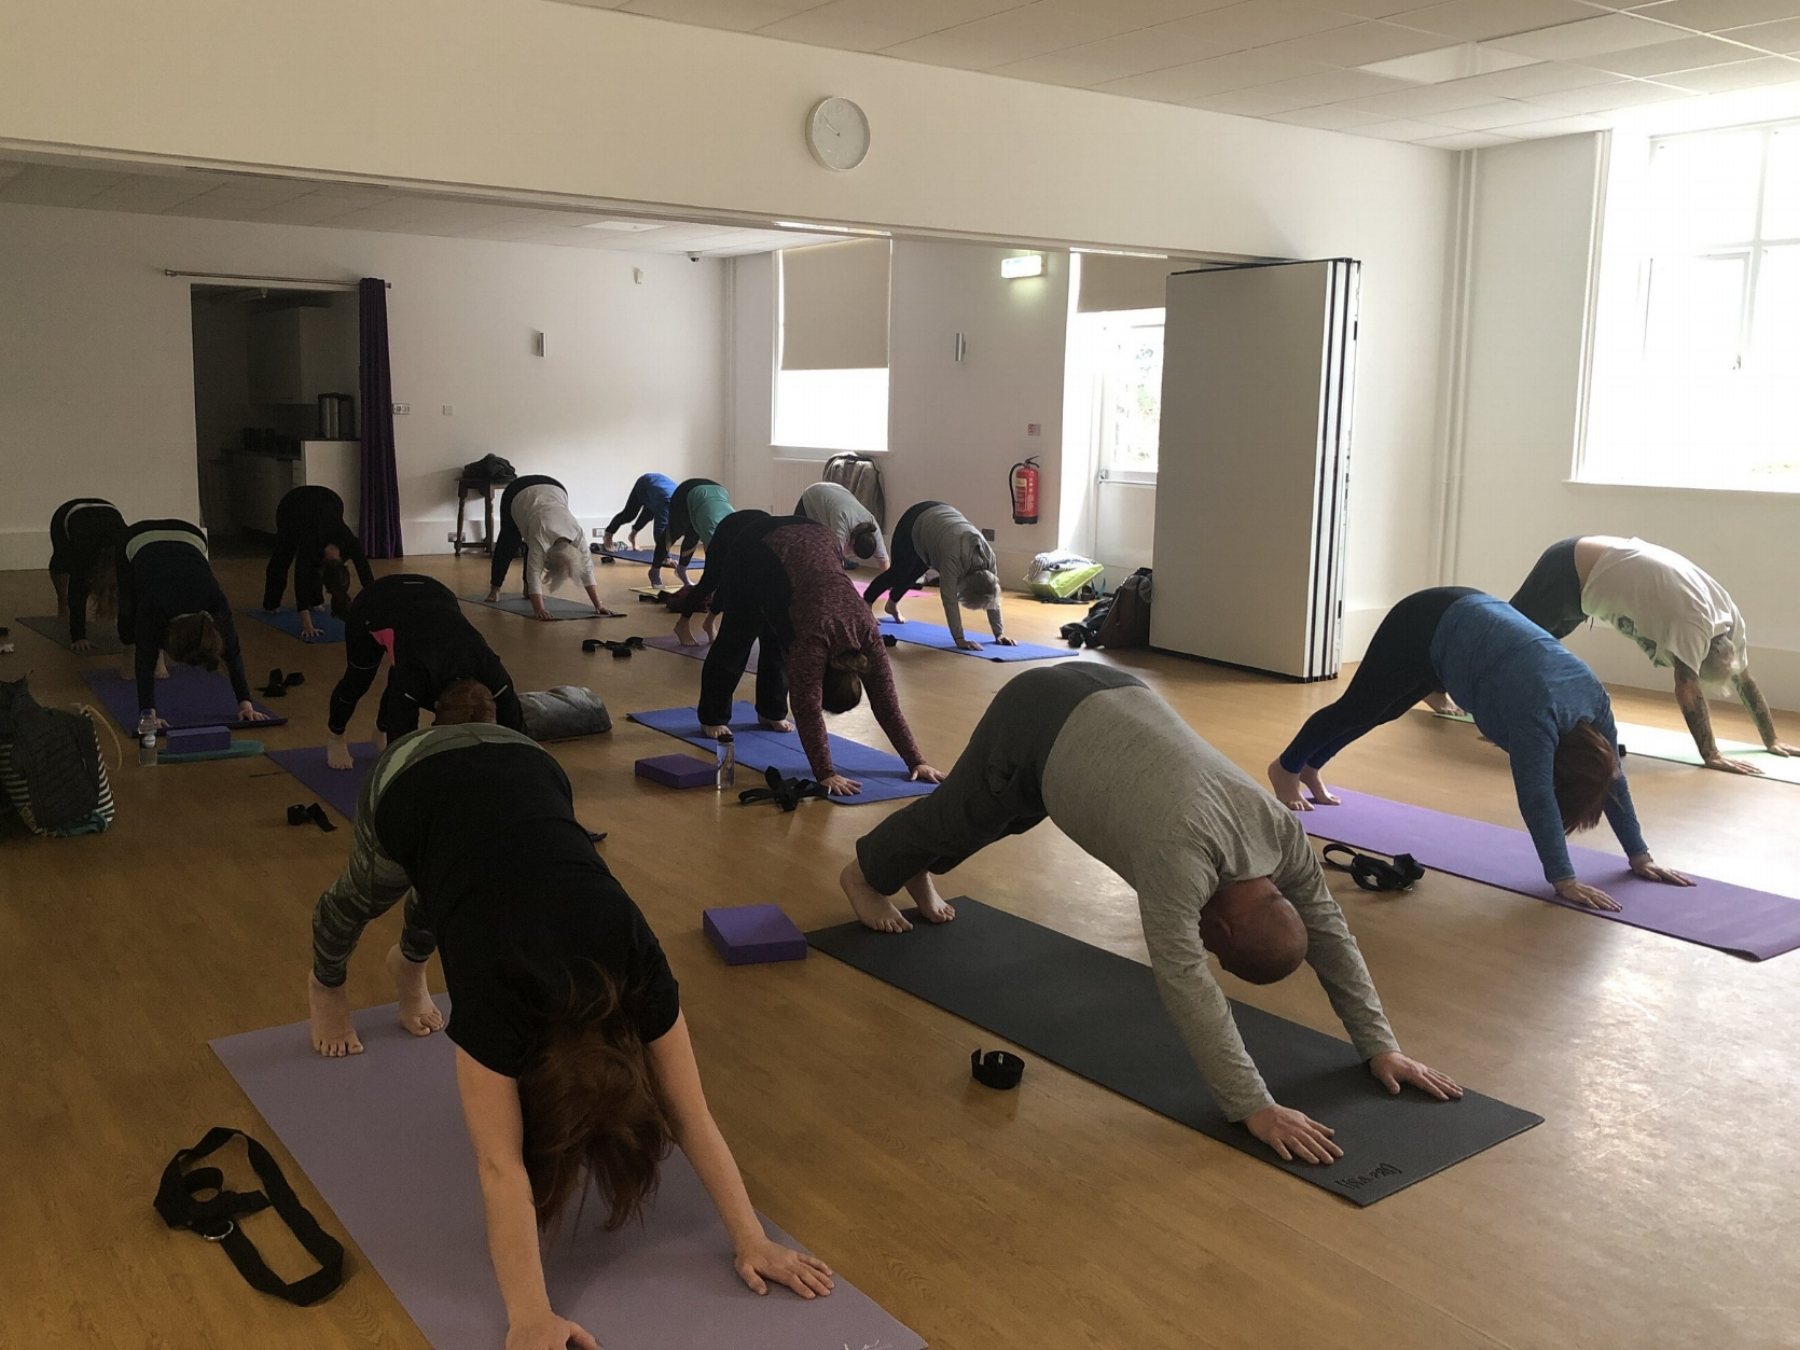 The yoginis and yogis of John Godber Centre, Hucknall Nottingham strengthening their shoulders in downward facing dog